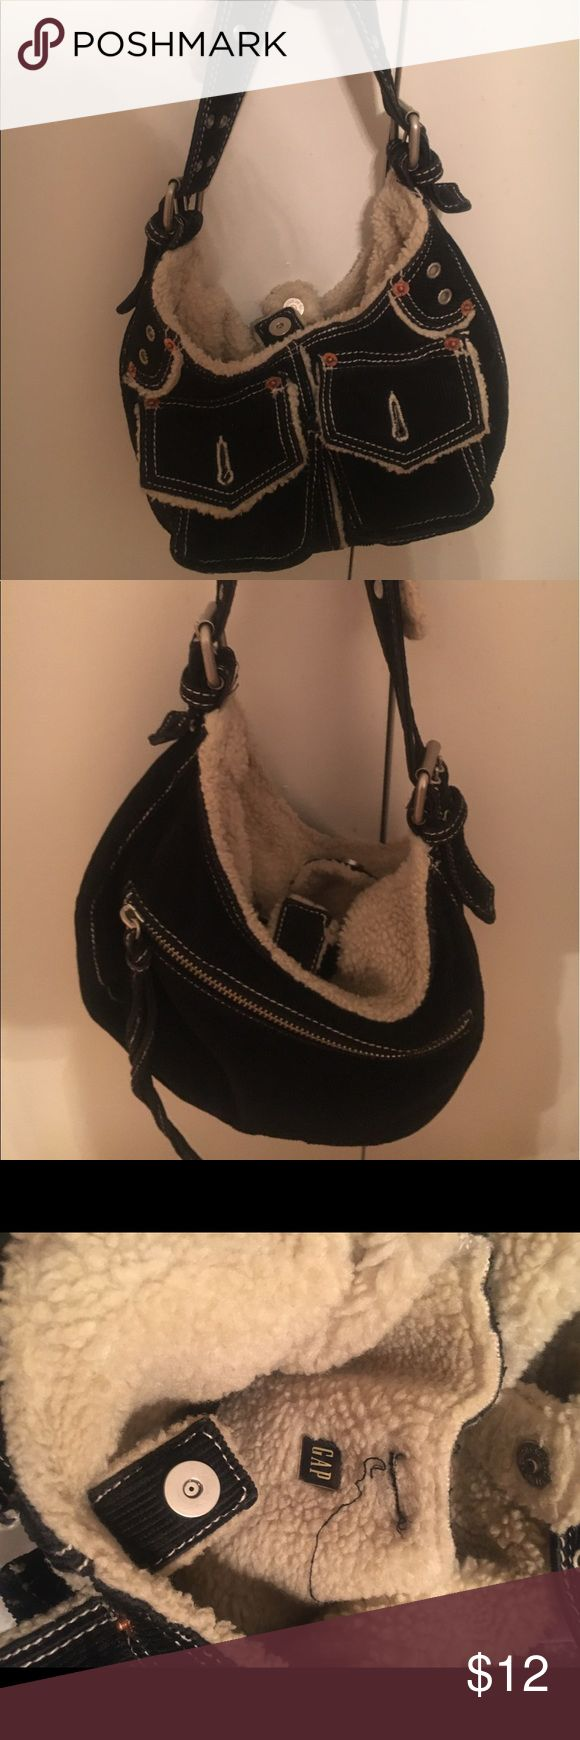 Black corduroy GAP purse Great condition GAP Bags Shoulder Bags